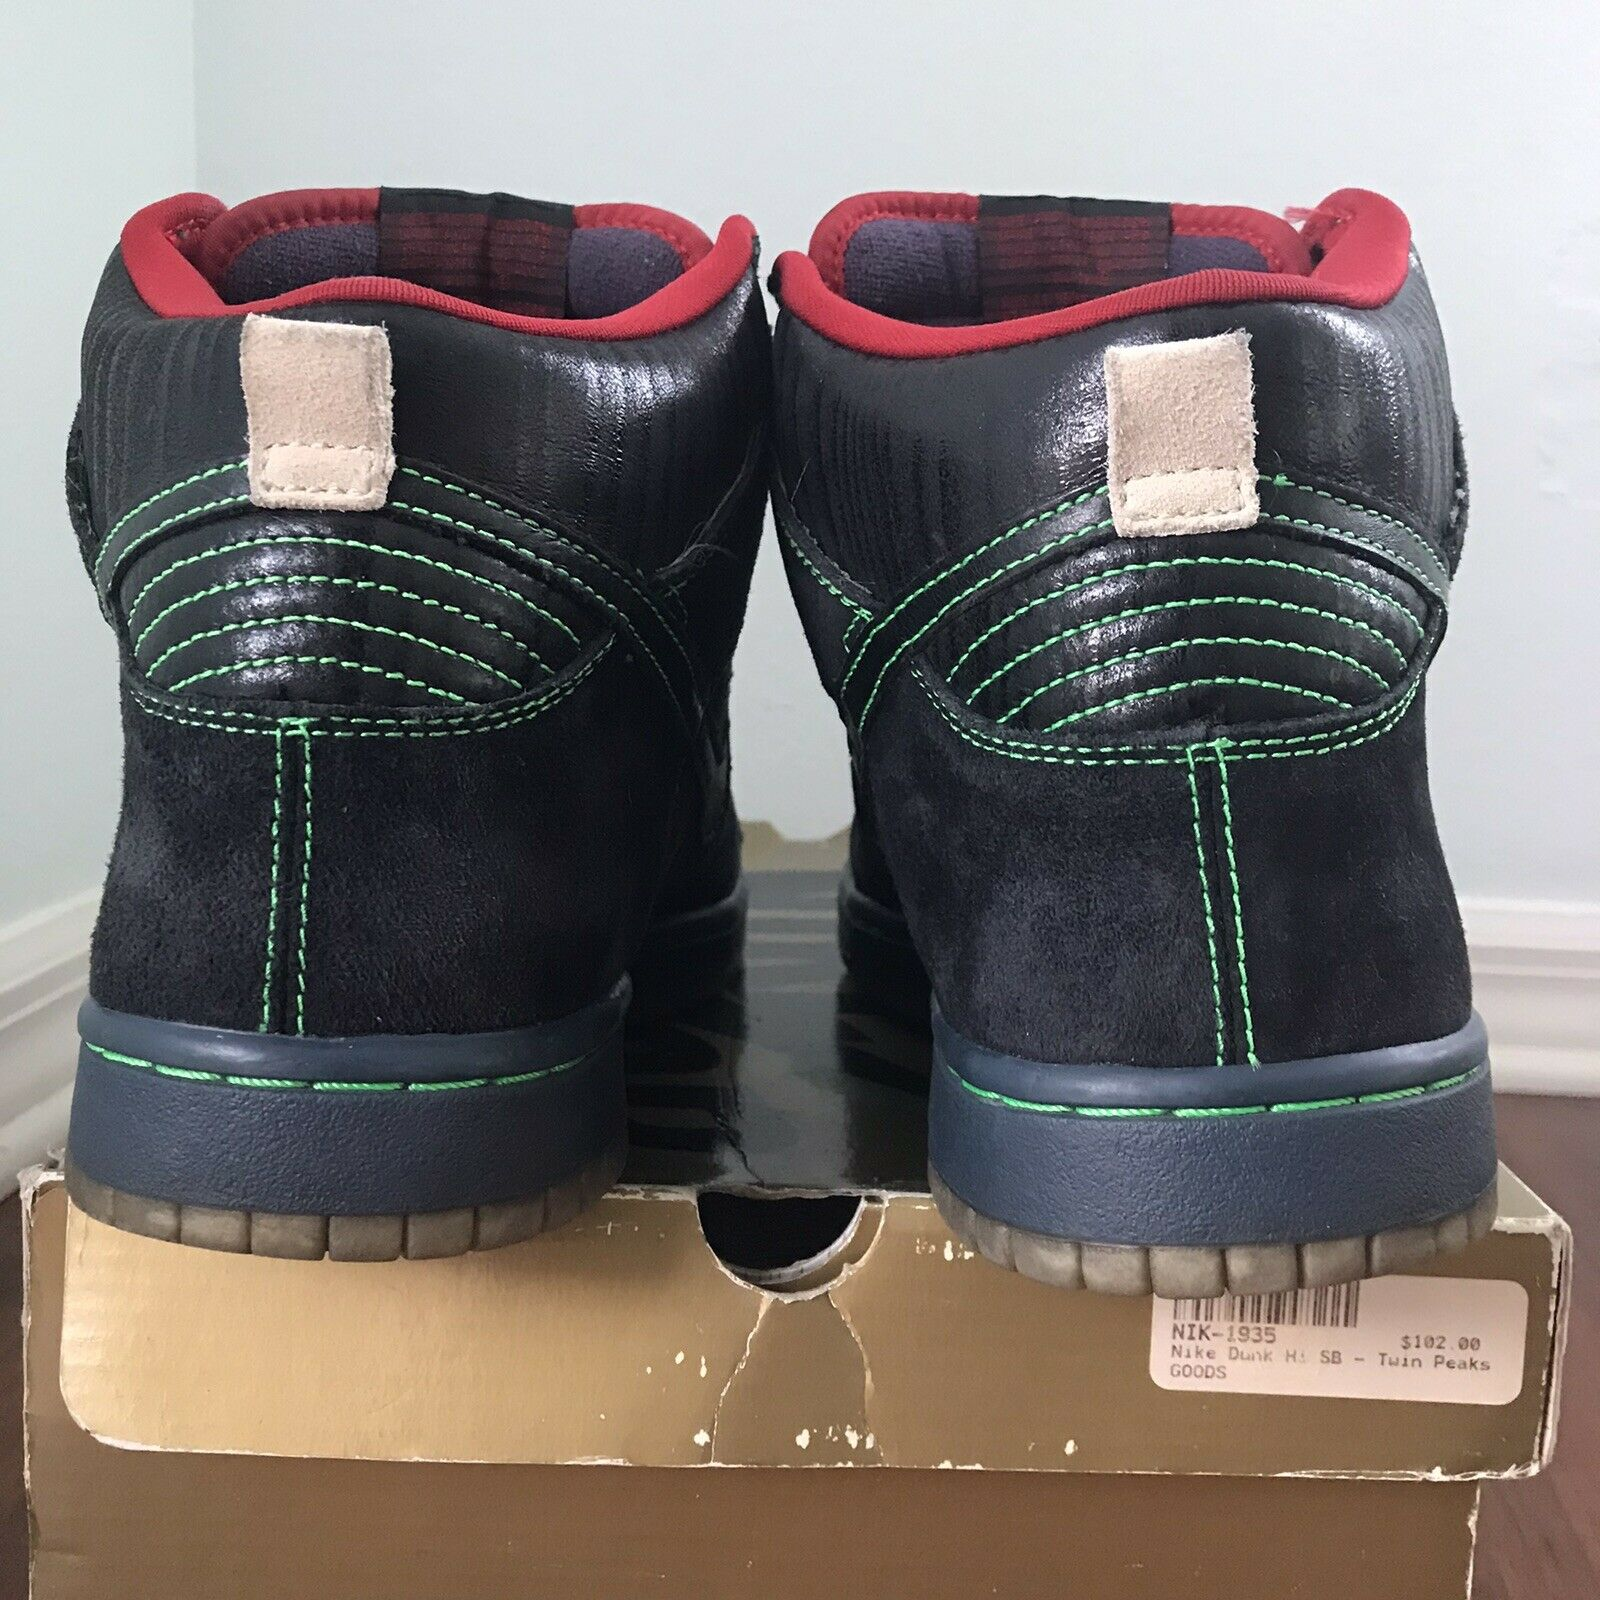 Nike SB Dunk High Twin Peaks Size 9.5 Night Owl - image 8